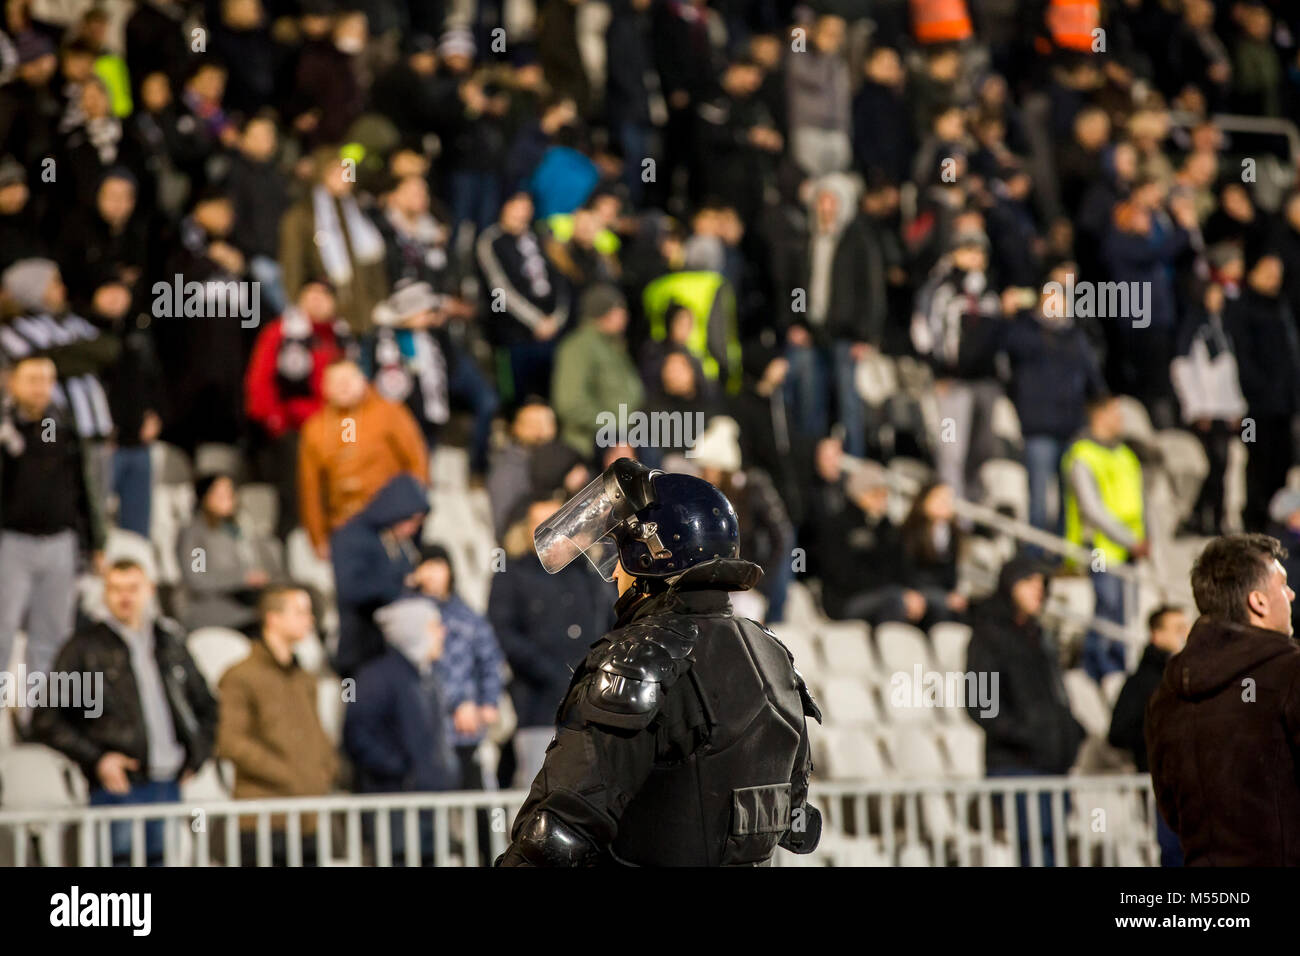 The police at the stadium event secure a safe match against the hooligans Stock Photo